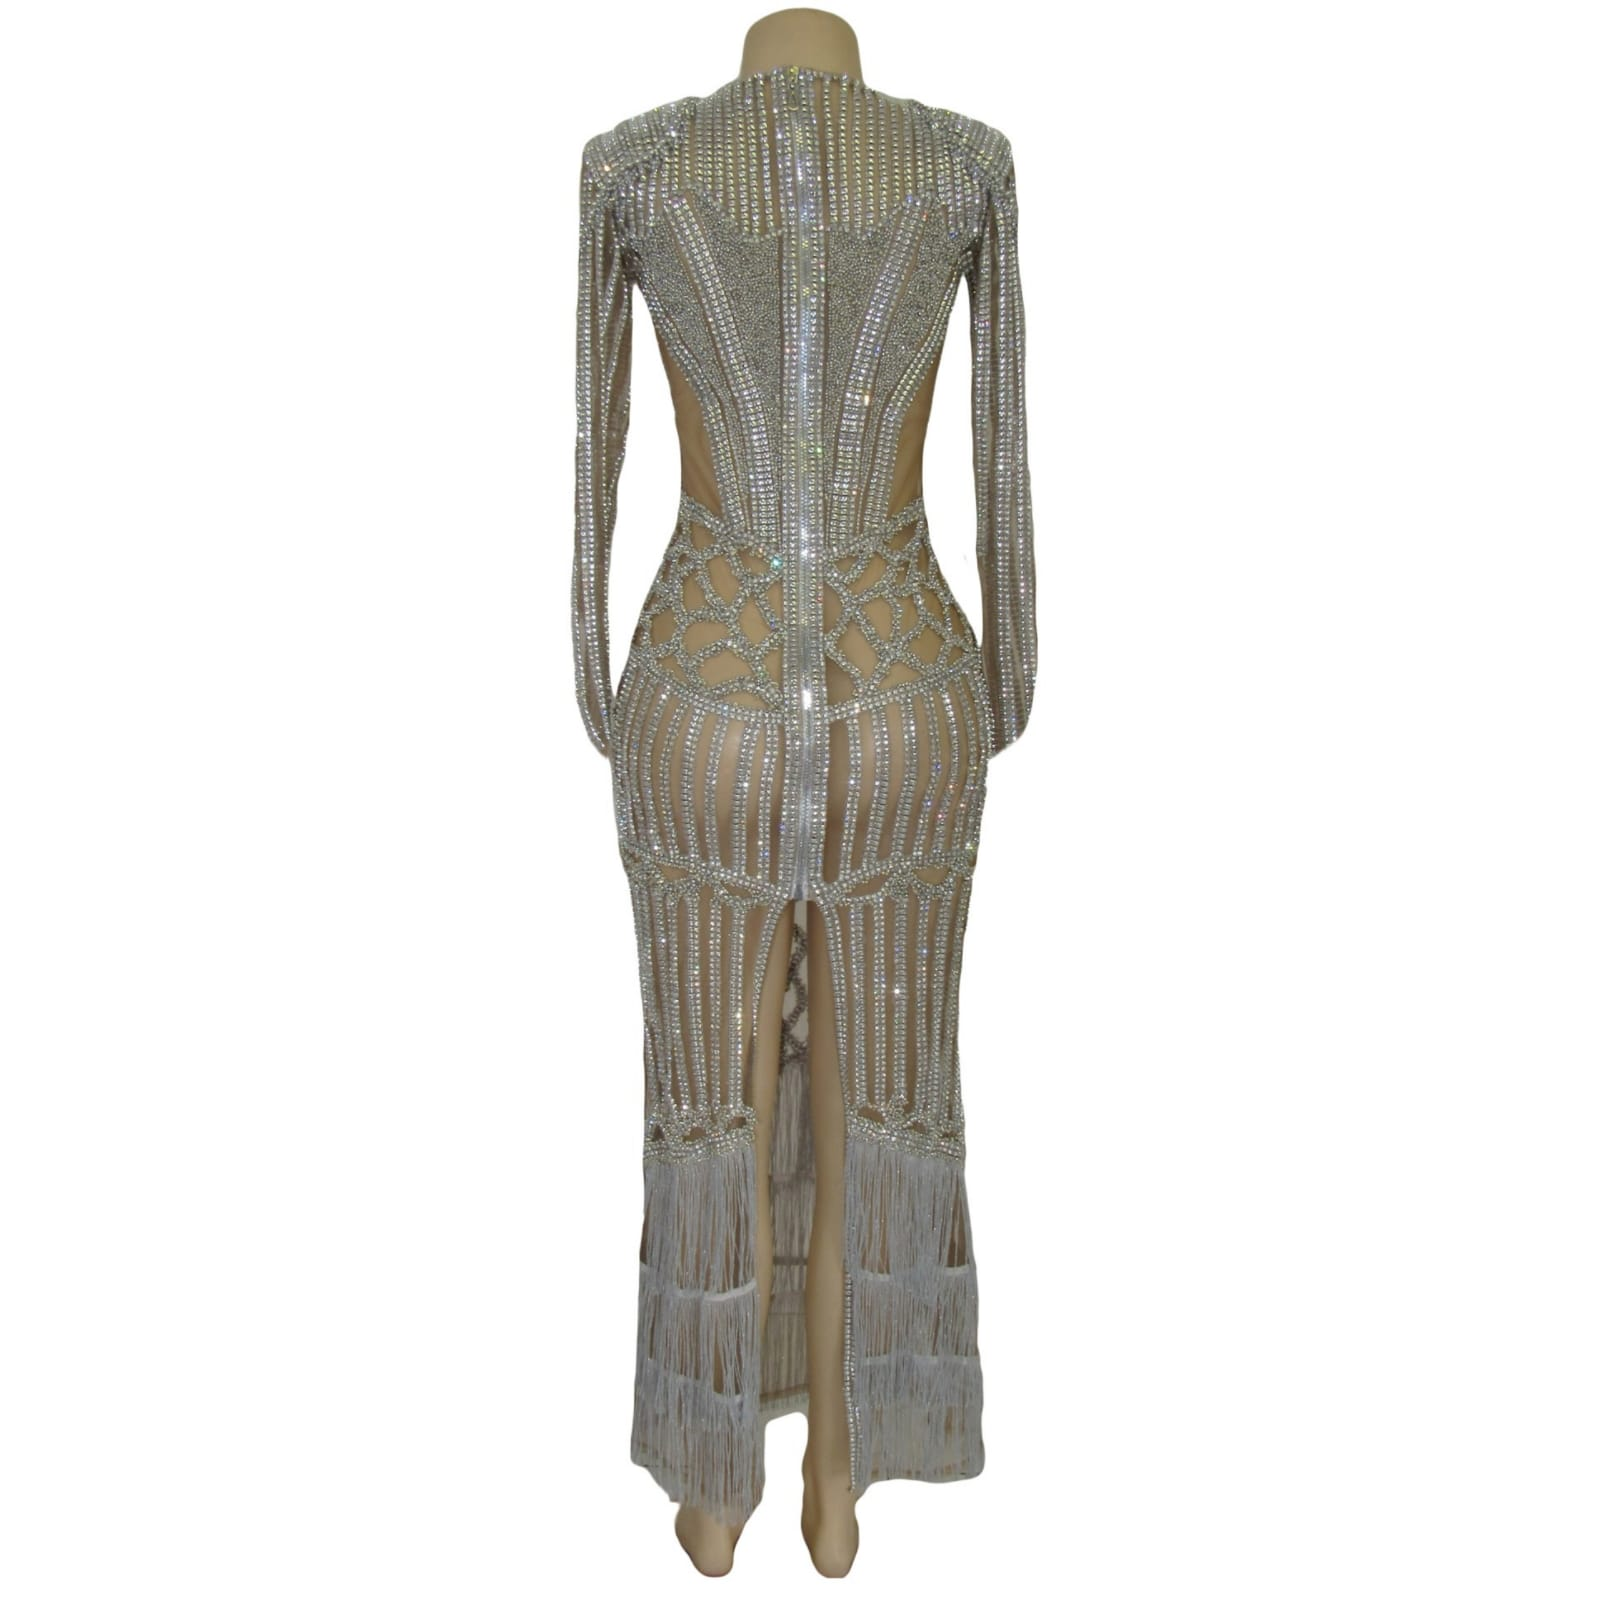 Long sheer fully beaded matric farewell dress with long sleeves 9 long sheer fully beaded matric farewell dress with long sleeves, tassels and a back high slit. With padded shoulders.